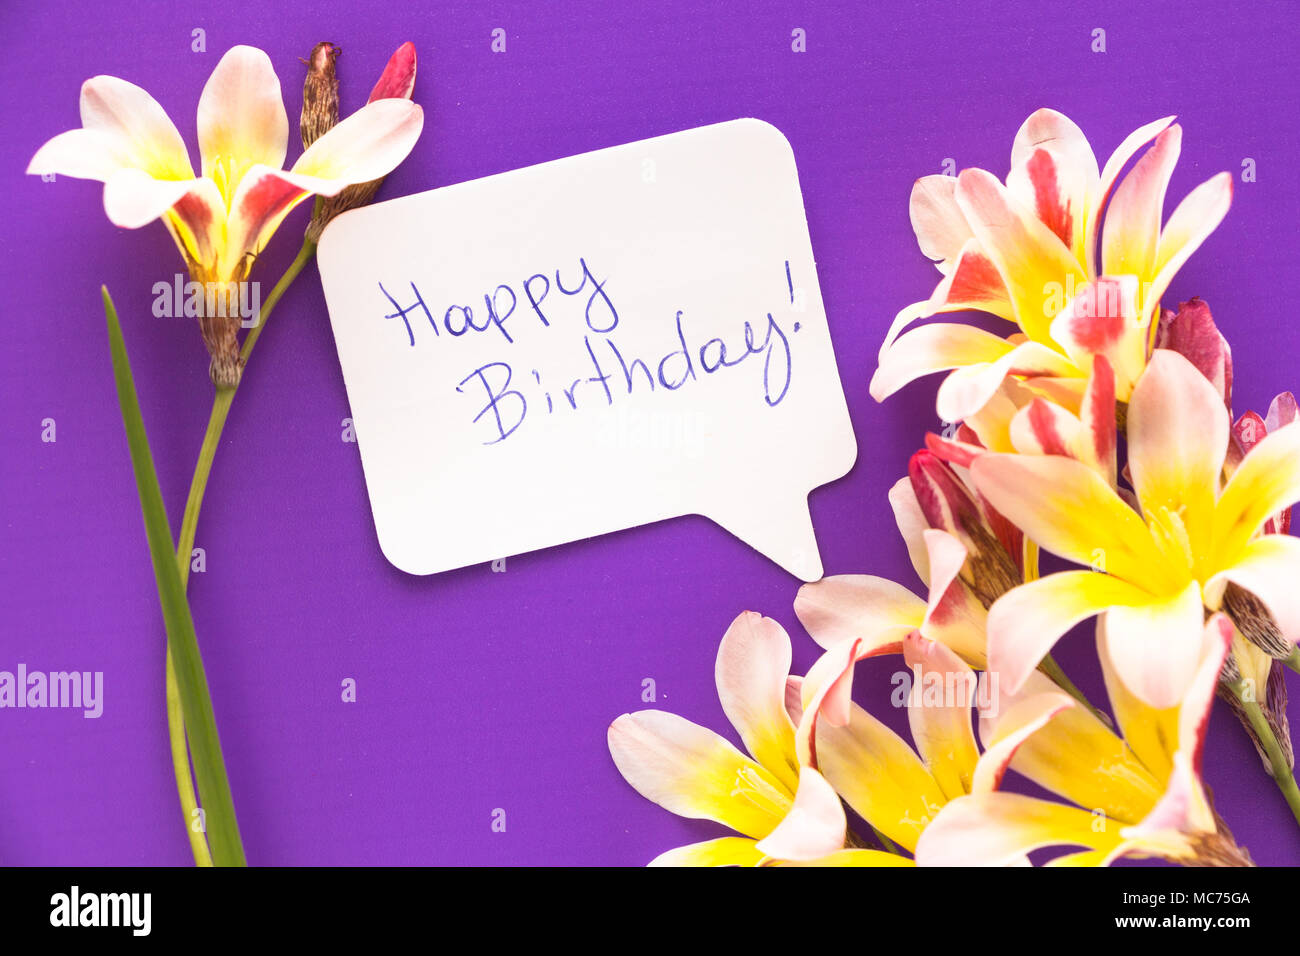 Note in shape of heart with words happy birthday with flowers on note in shape of heart with words happy birthday with flowers on purple surface izmirmasajfo